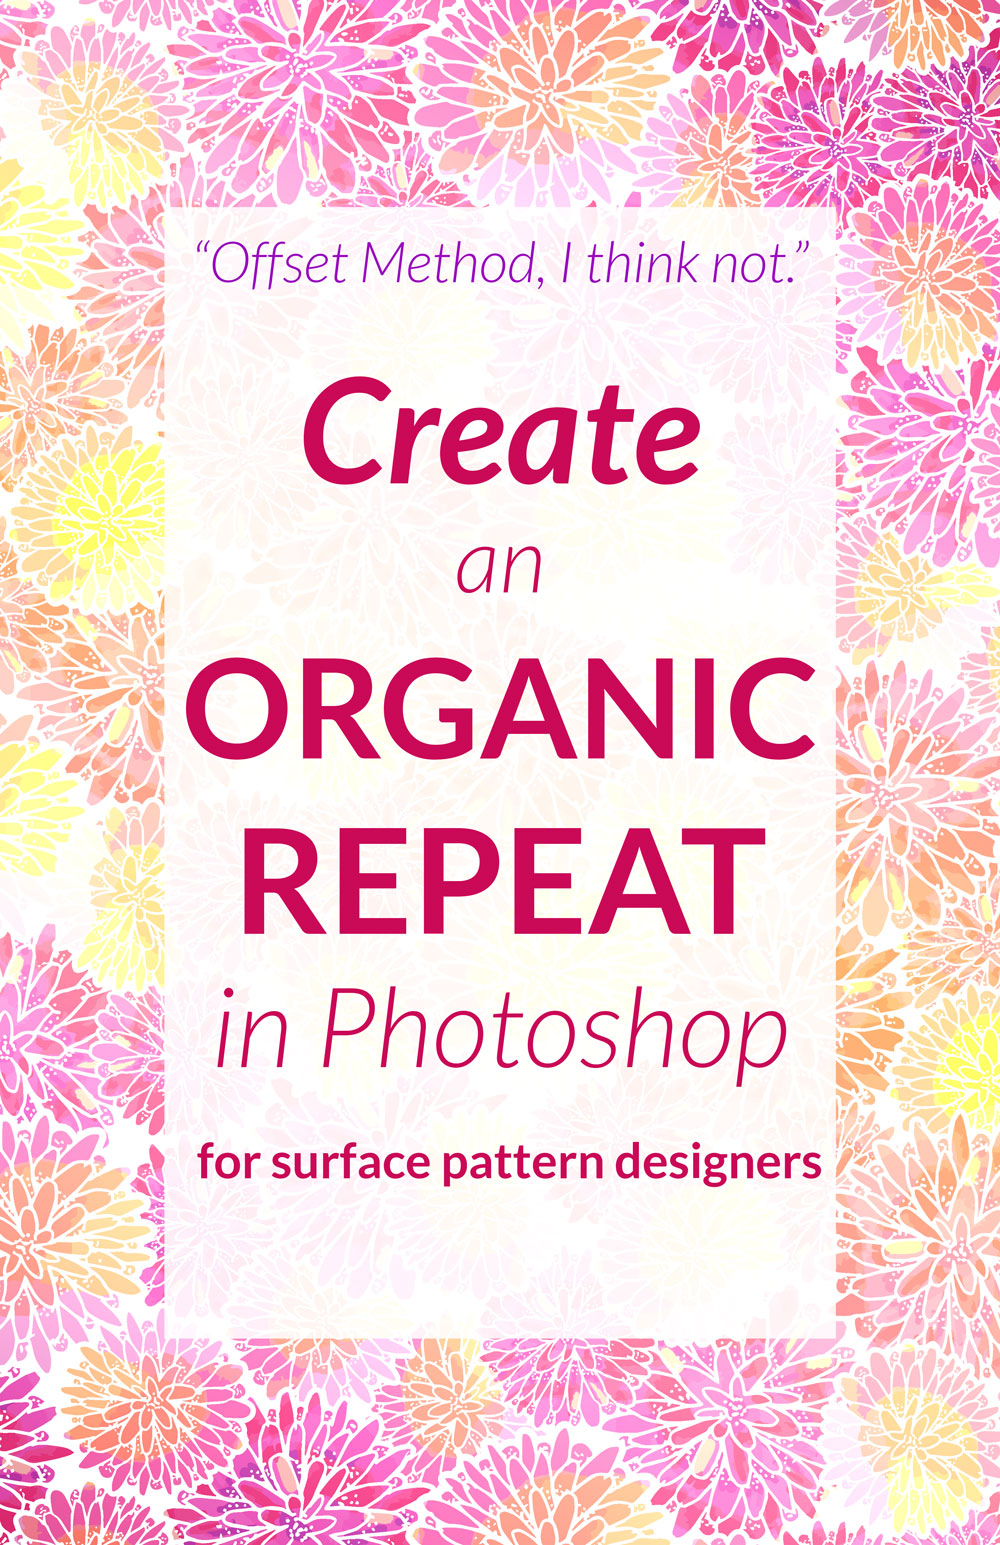 Tired of the Offset Method? Try this tutorial on creating repeats organically.